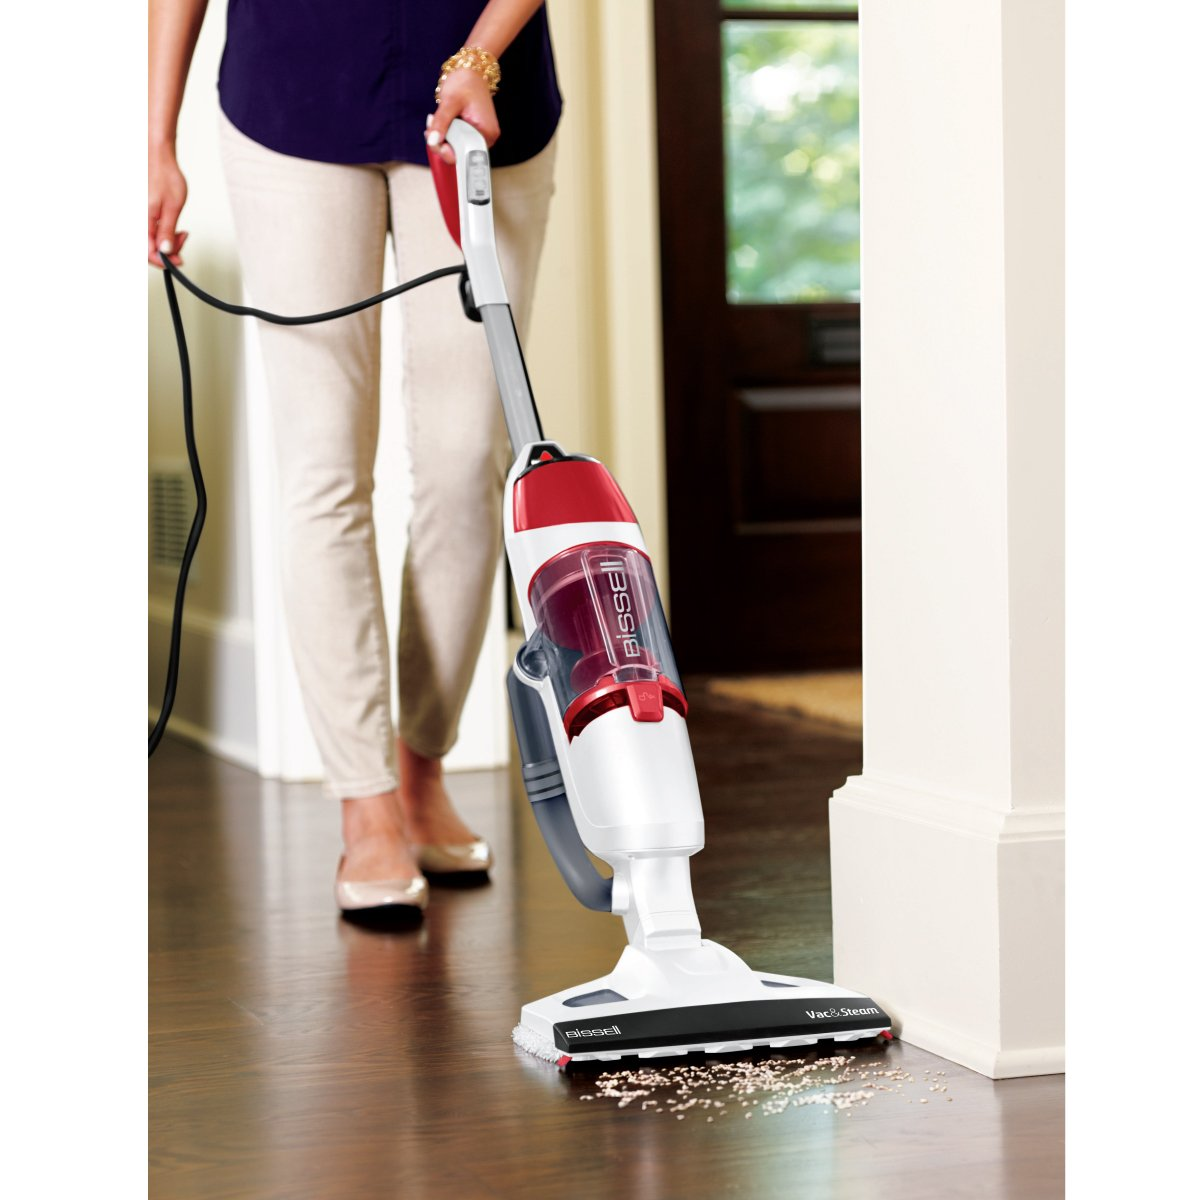 Bissell vac and steam 2 in 1 vacuum cleaner whitered amazon bissell vac and steam 2 in 1 vacuum cleaner whitered amazon kitchen home dailygadgetfo Choice Image